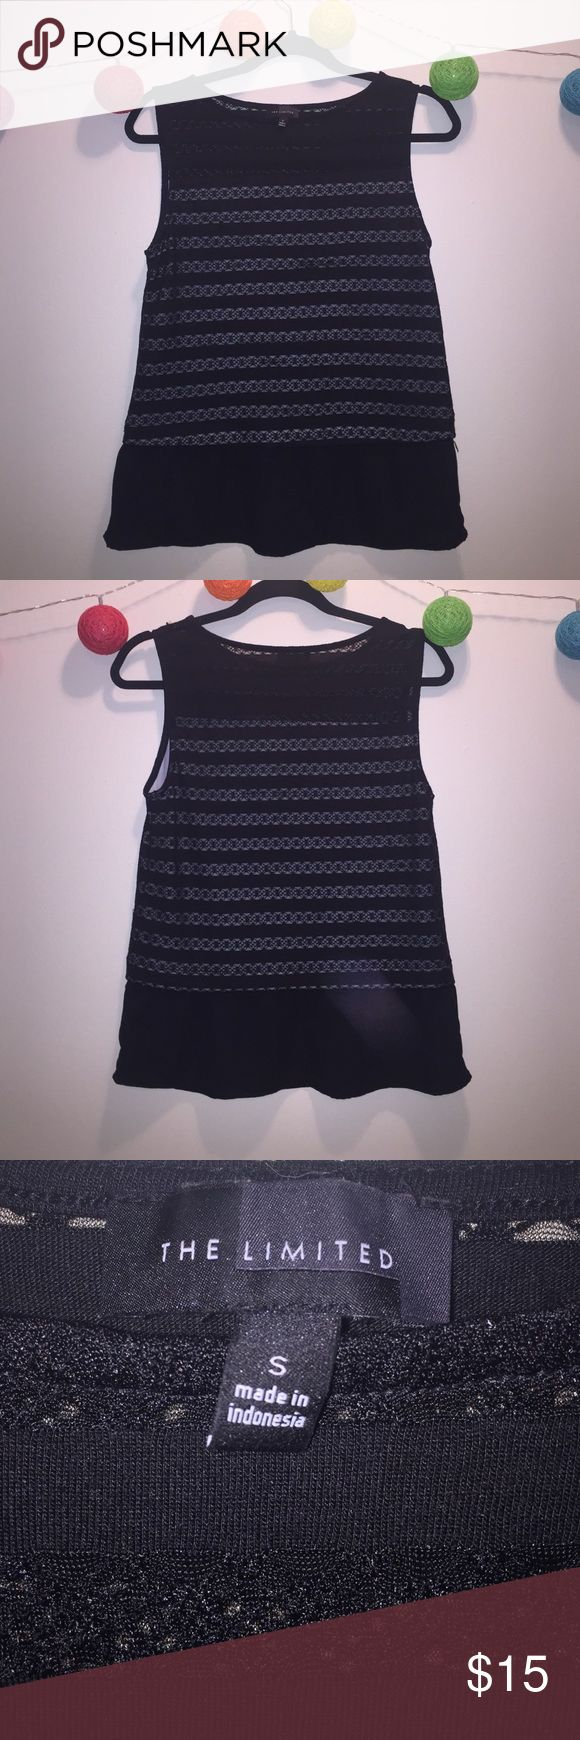 The Limited Black Peplum Shirt The Limited Black Peplum Shirt. Cute design. Great for layering. Cute over pants or tucked into a skirt. Great quality. The Limited Tops Tank Tops